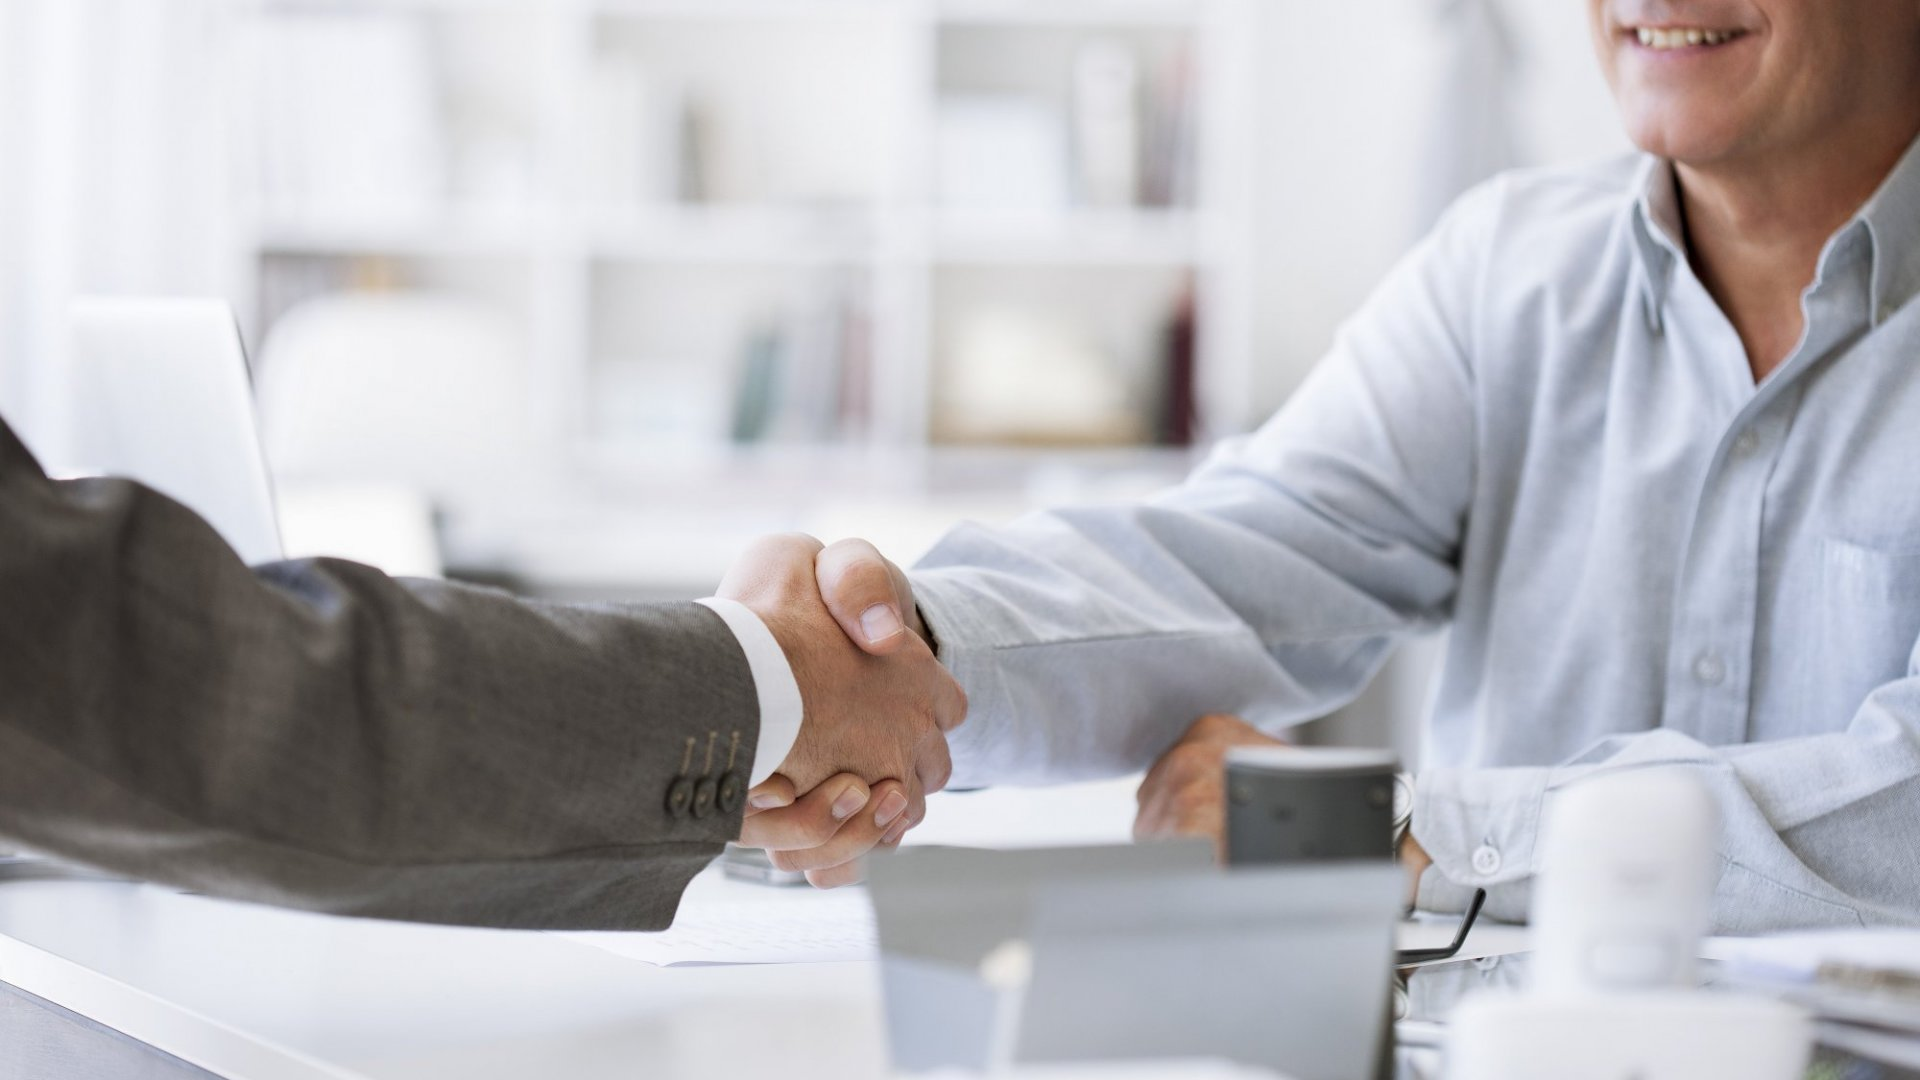 7 Essential Ways to Build Trust Among Your Employees